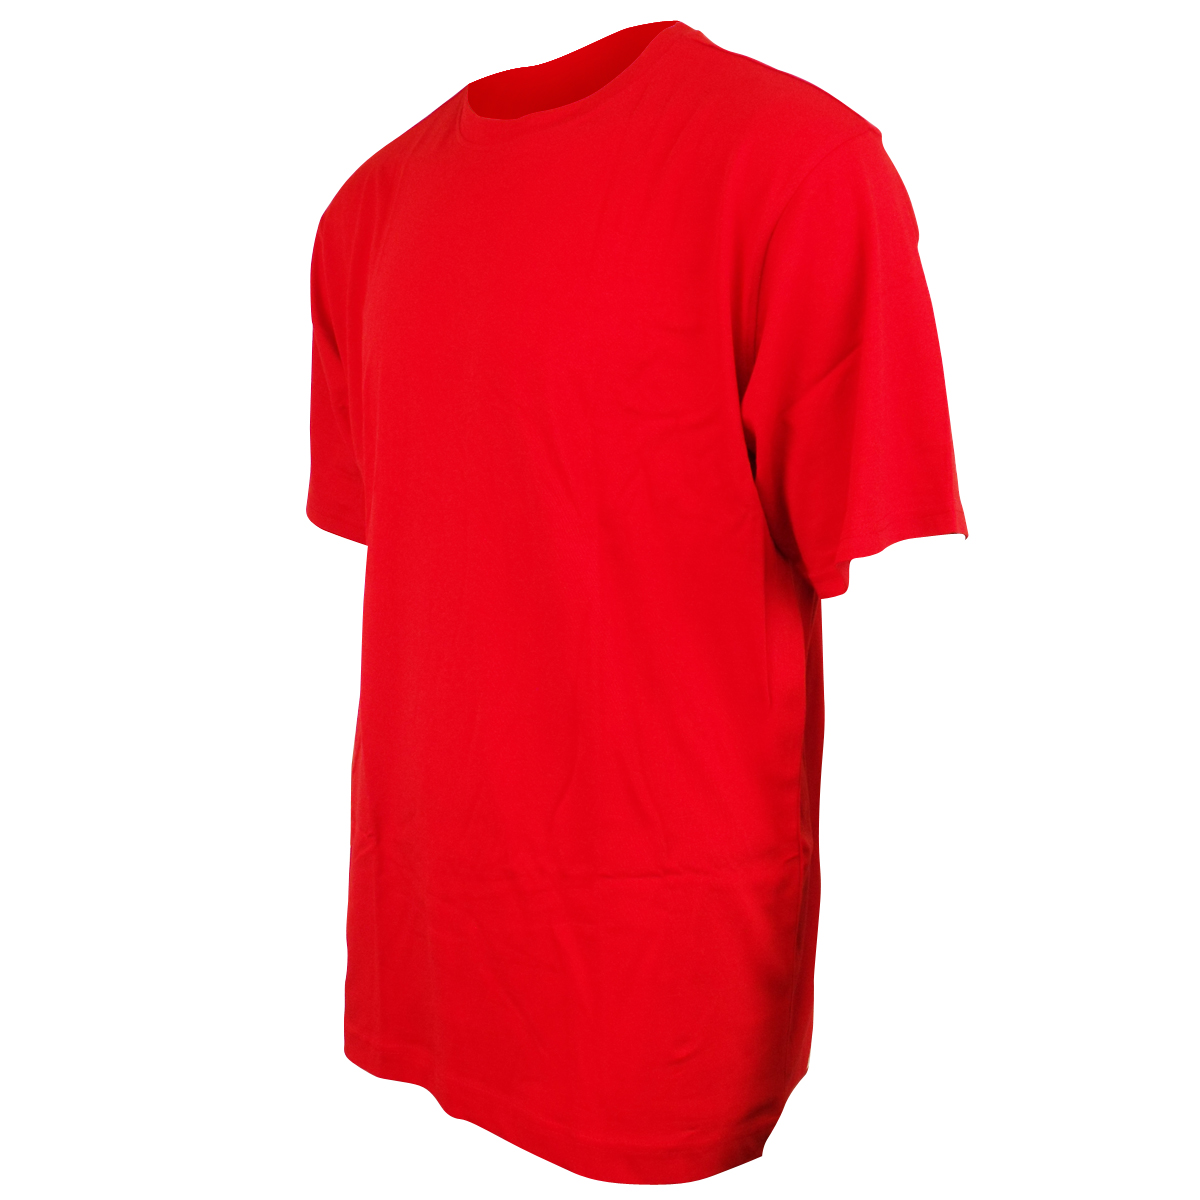 Mens nike retro red cotton tee t shirt running training for Old school nike shirts